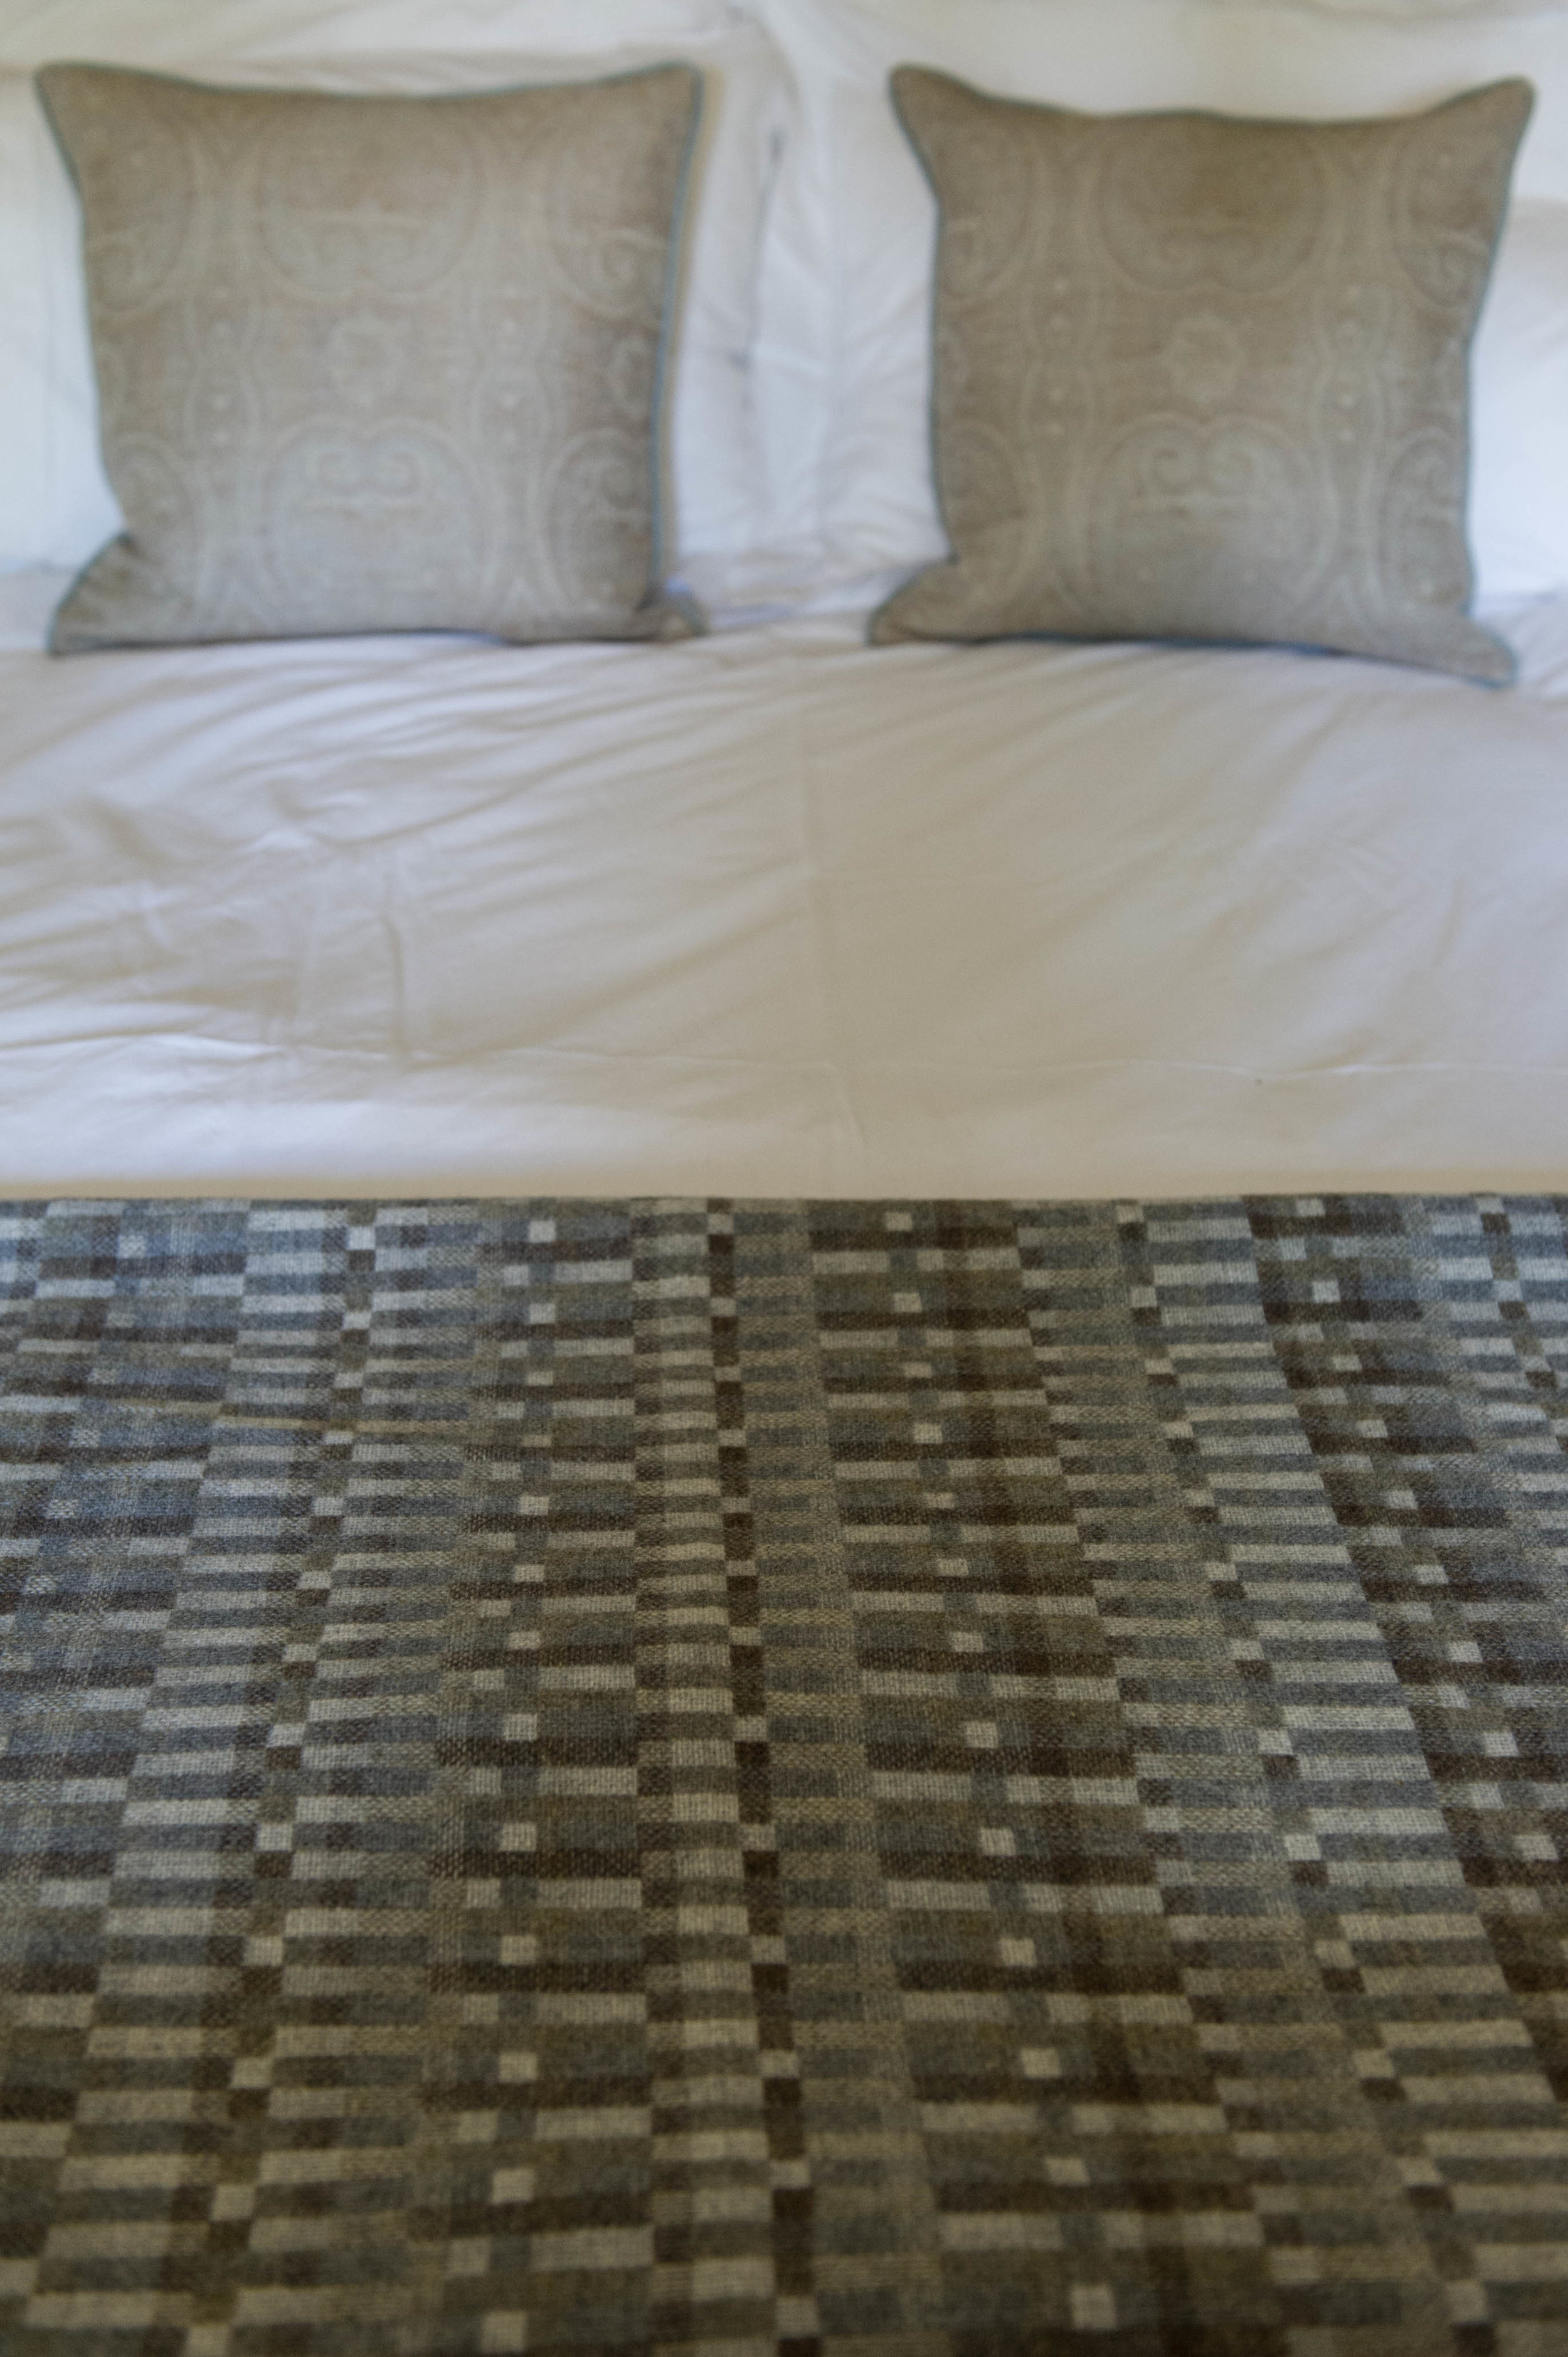 Bed dressed with grey, check throw and paisley print cushions.